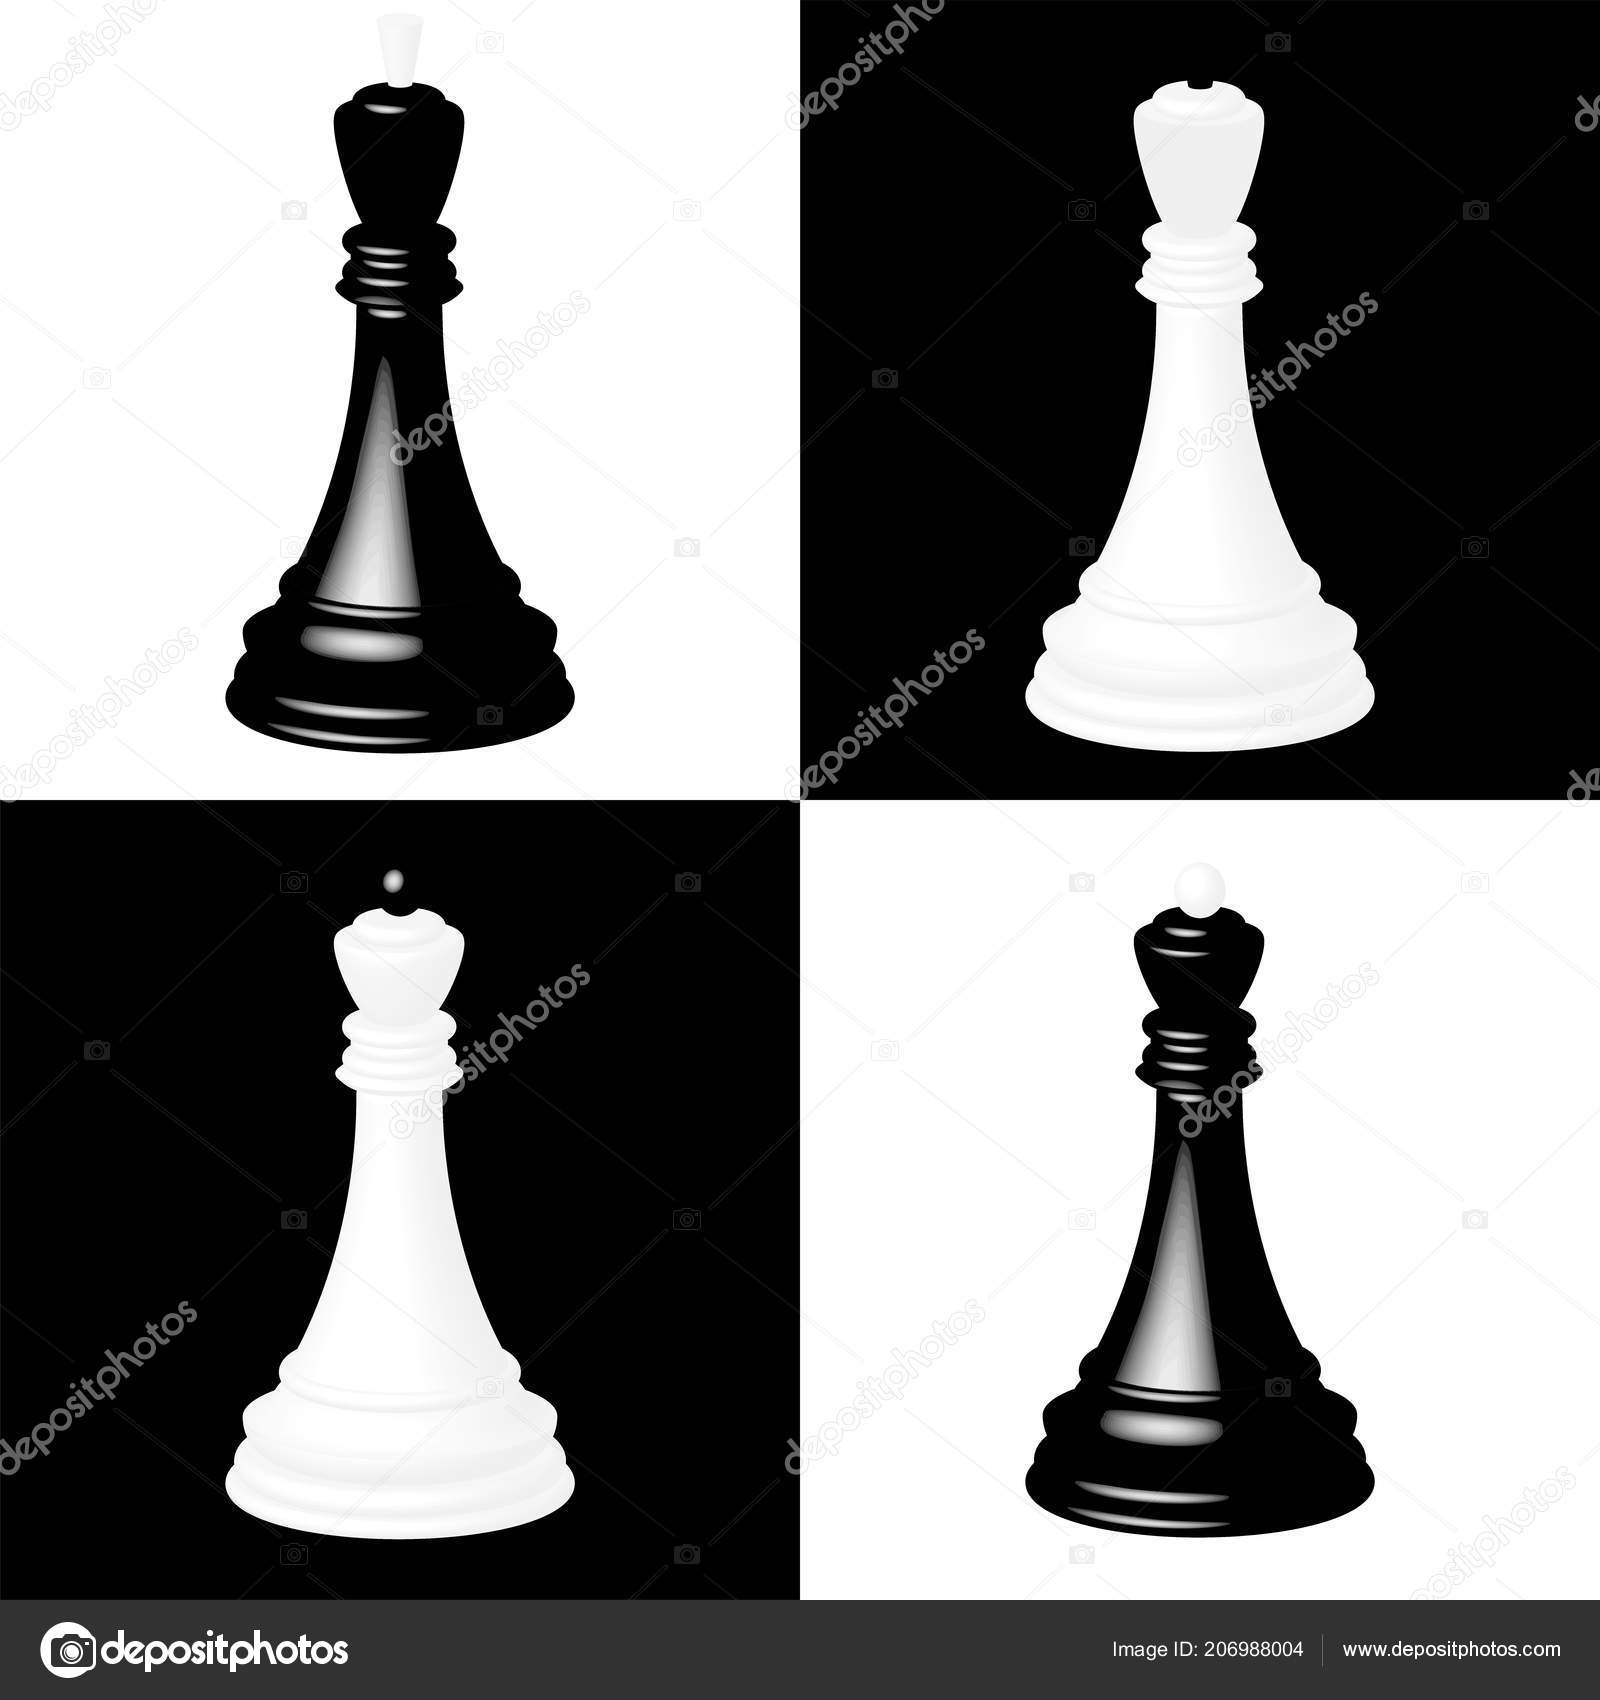 Captivating Realistic Chess Pieces Black White Chessboard Cells Black King Black U2014  Stock Vector